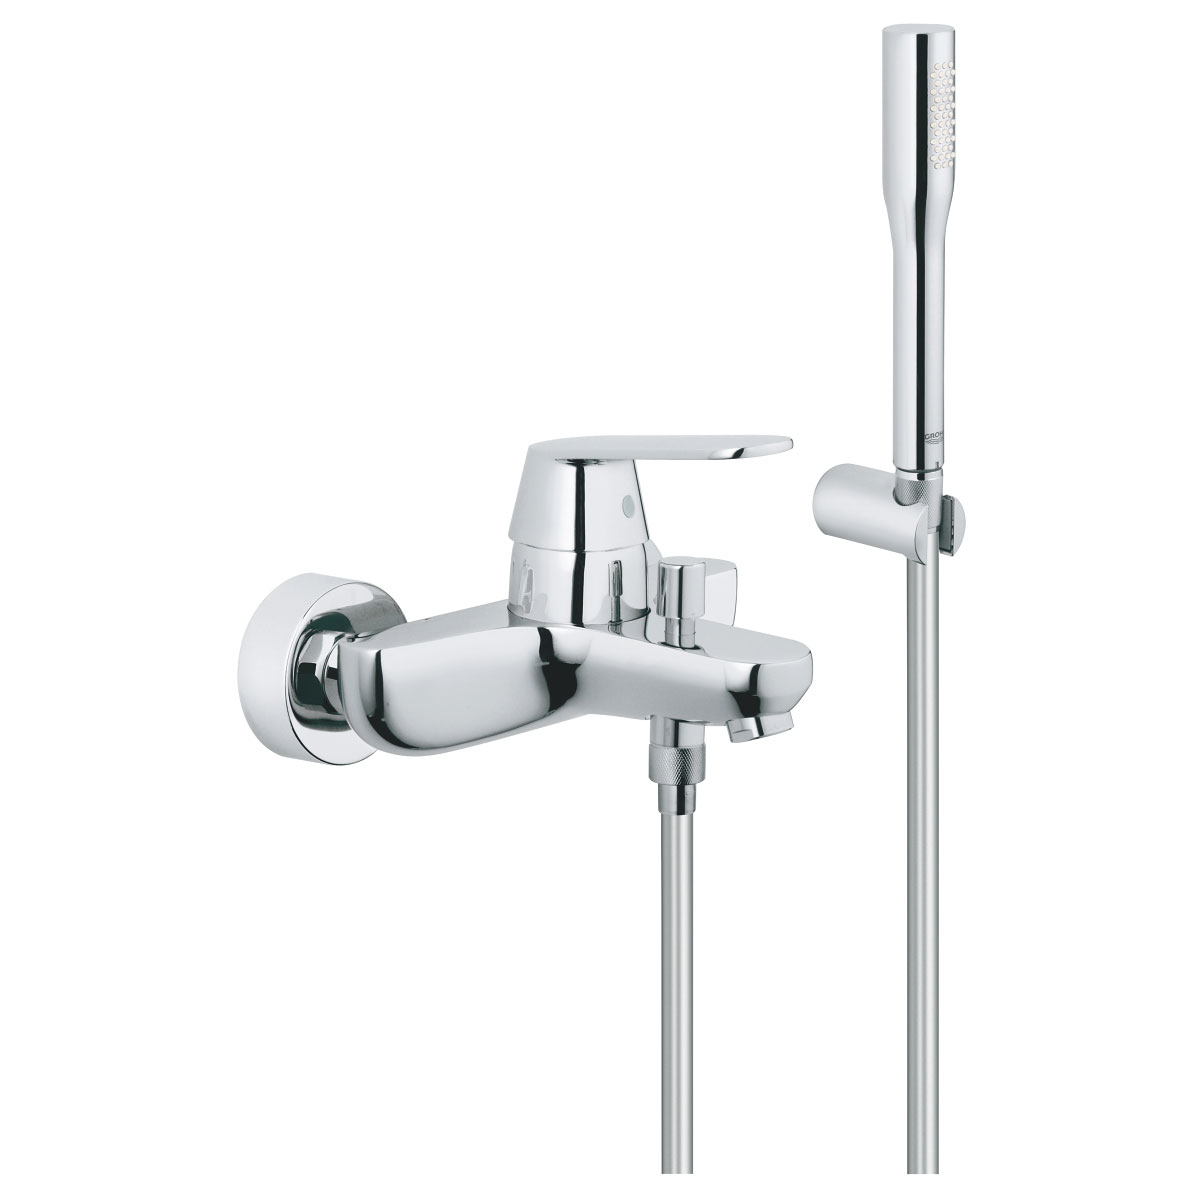 Grohe Eurosmart Cosmo Bath Shower Mixer Tap with Kit Wall Mounted - Chrome